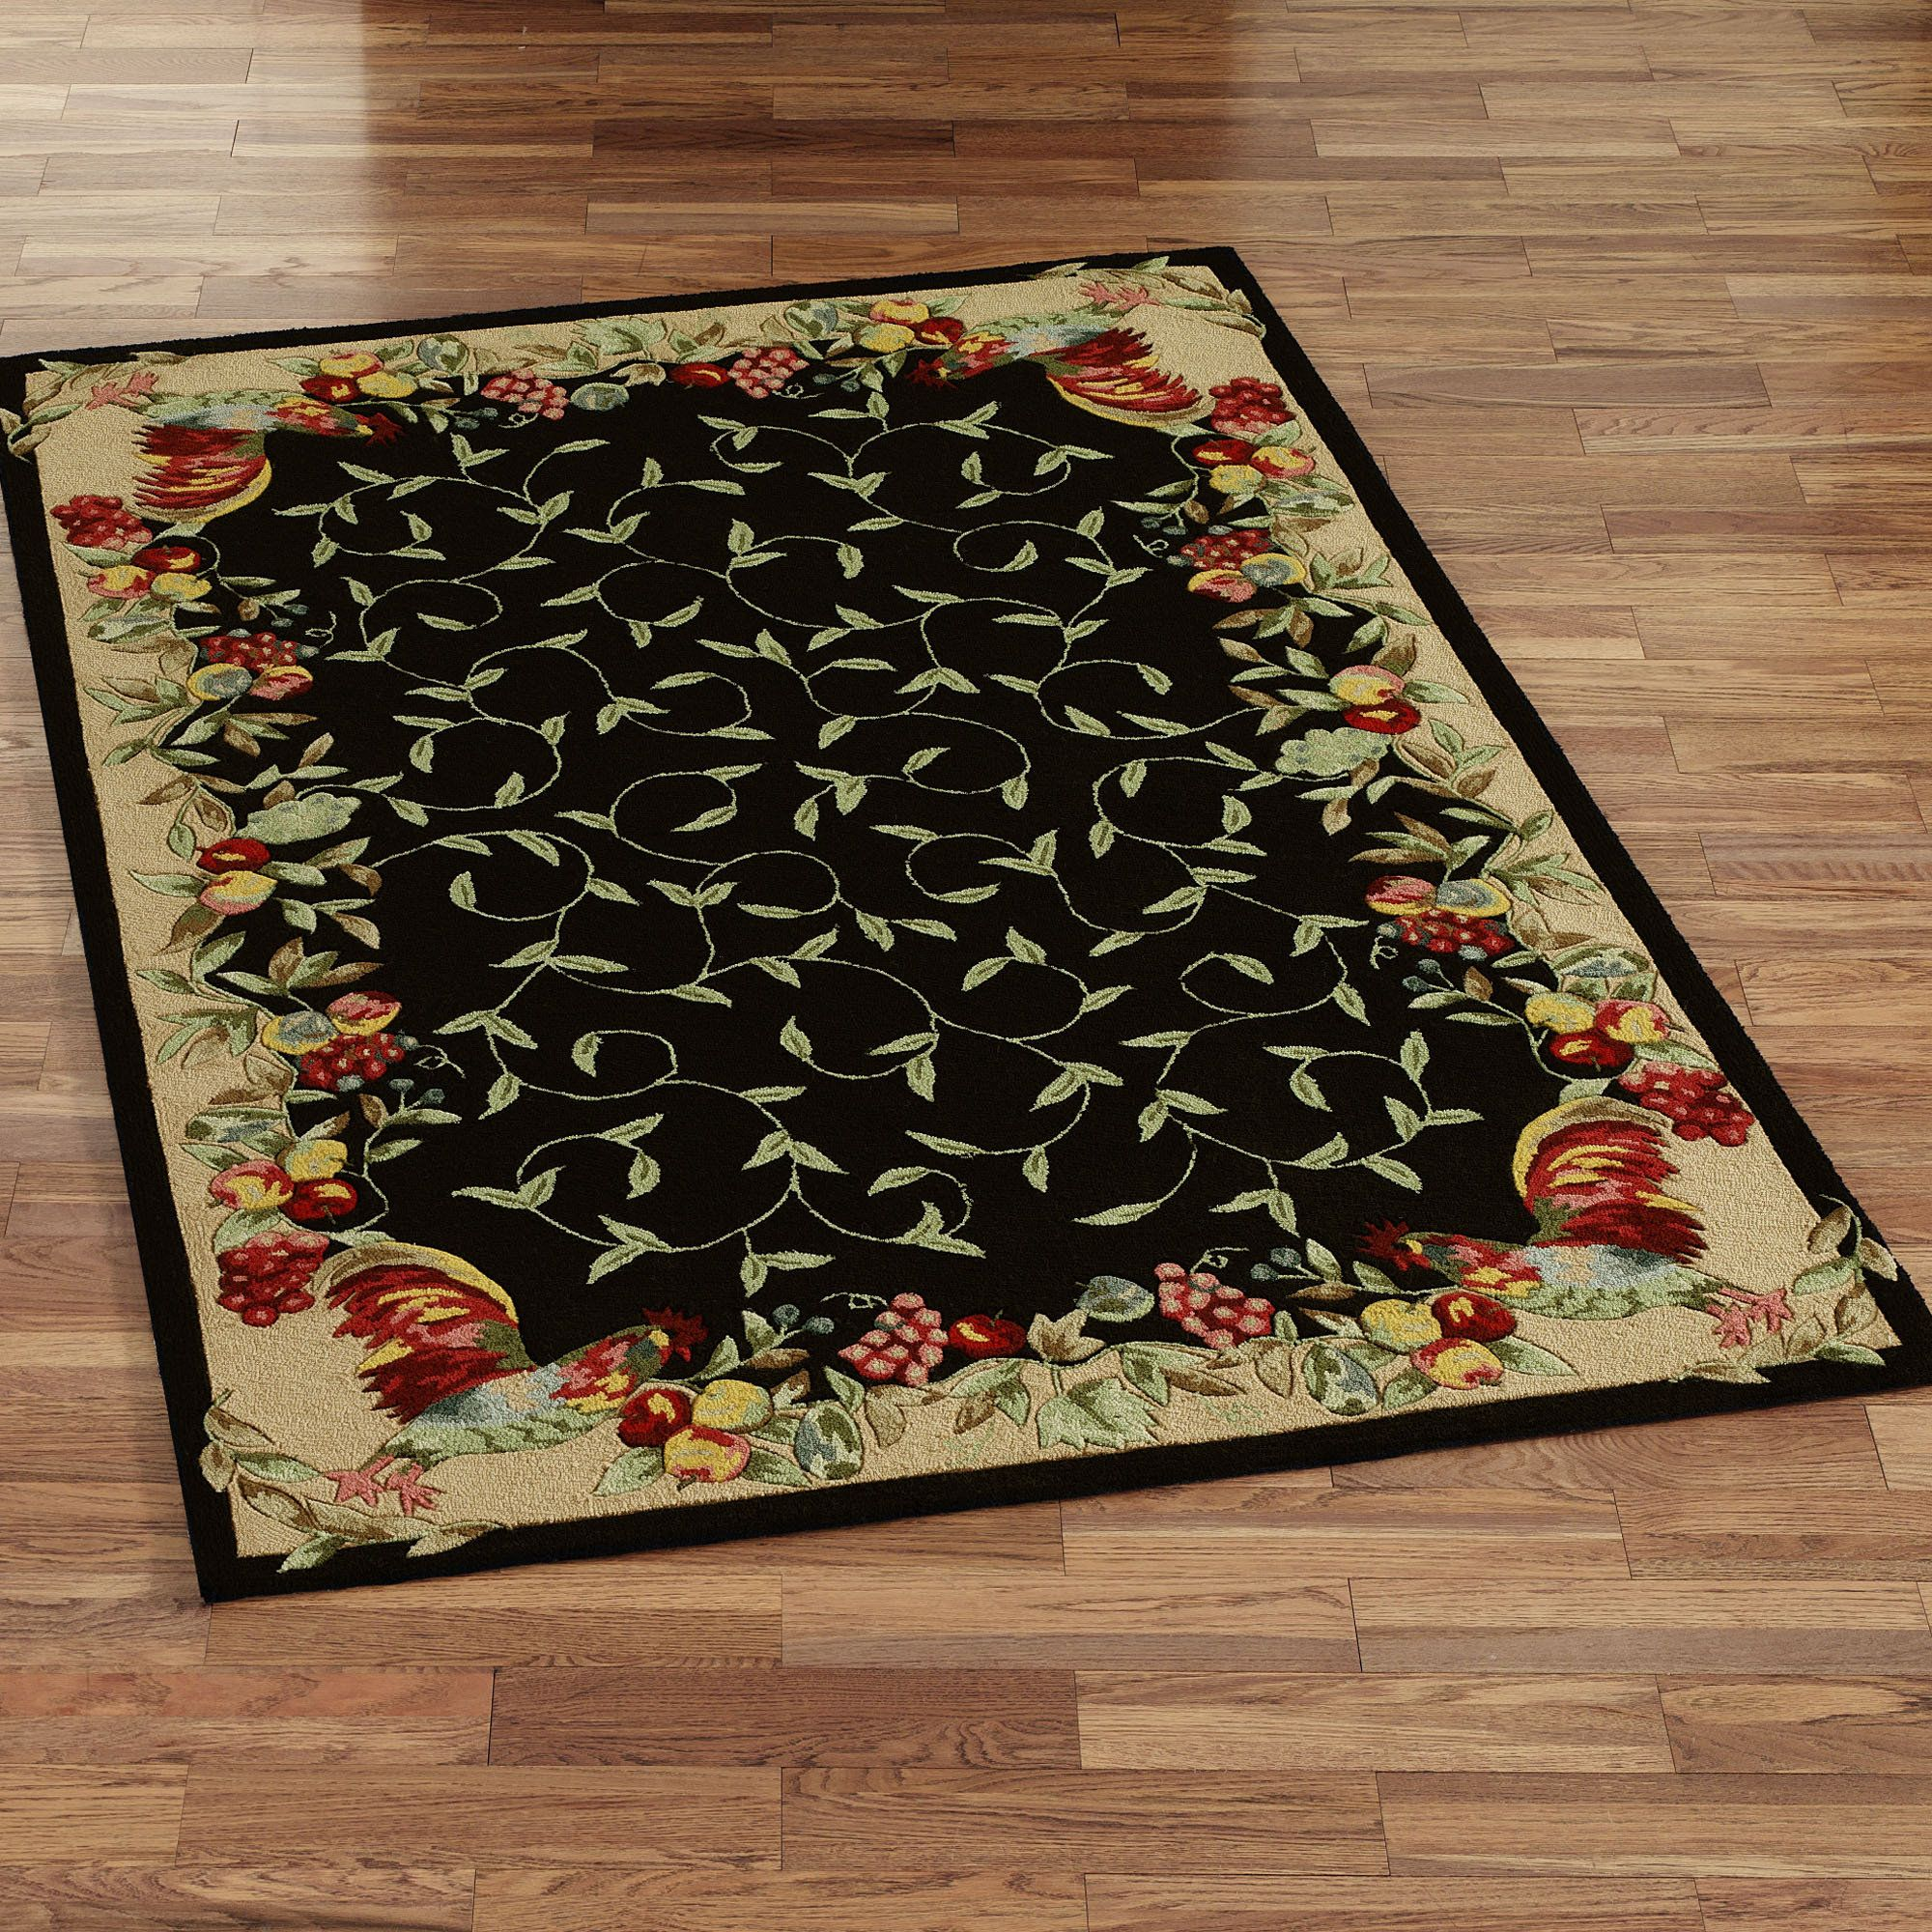 Beautiful Fruit And Floral Leafs Small Kitchen Rugs On Faux Wooden